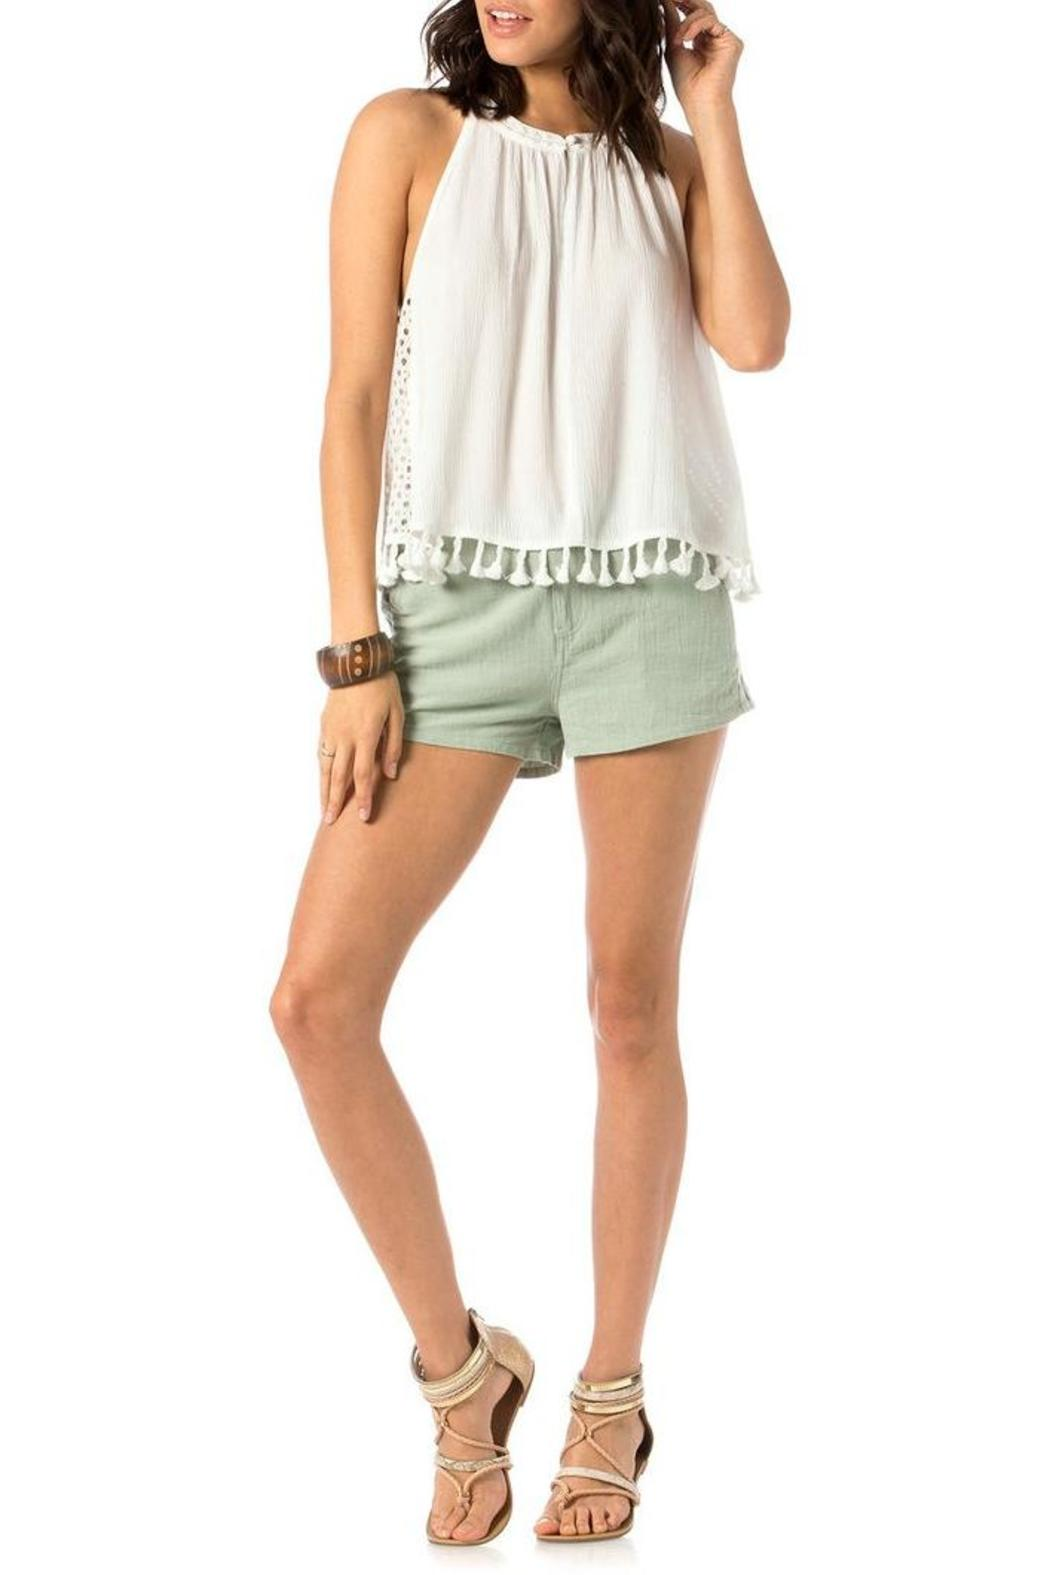 Miss Me Embroidered Trouser Shorts - Back Cropped Image